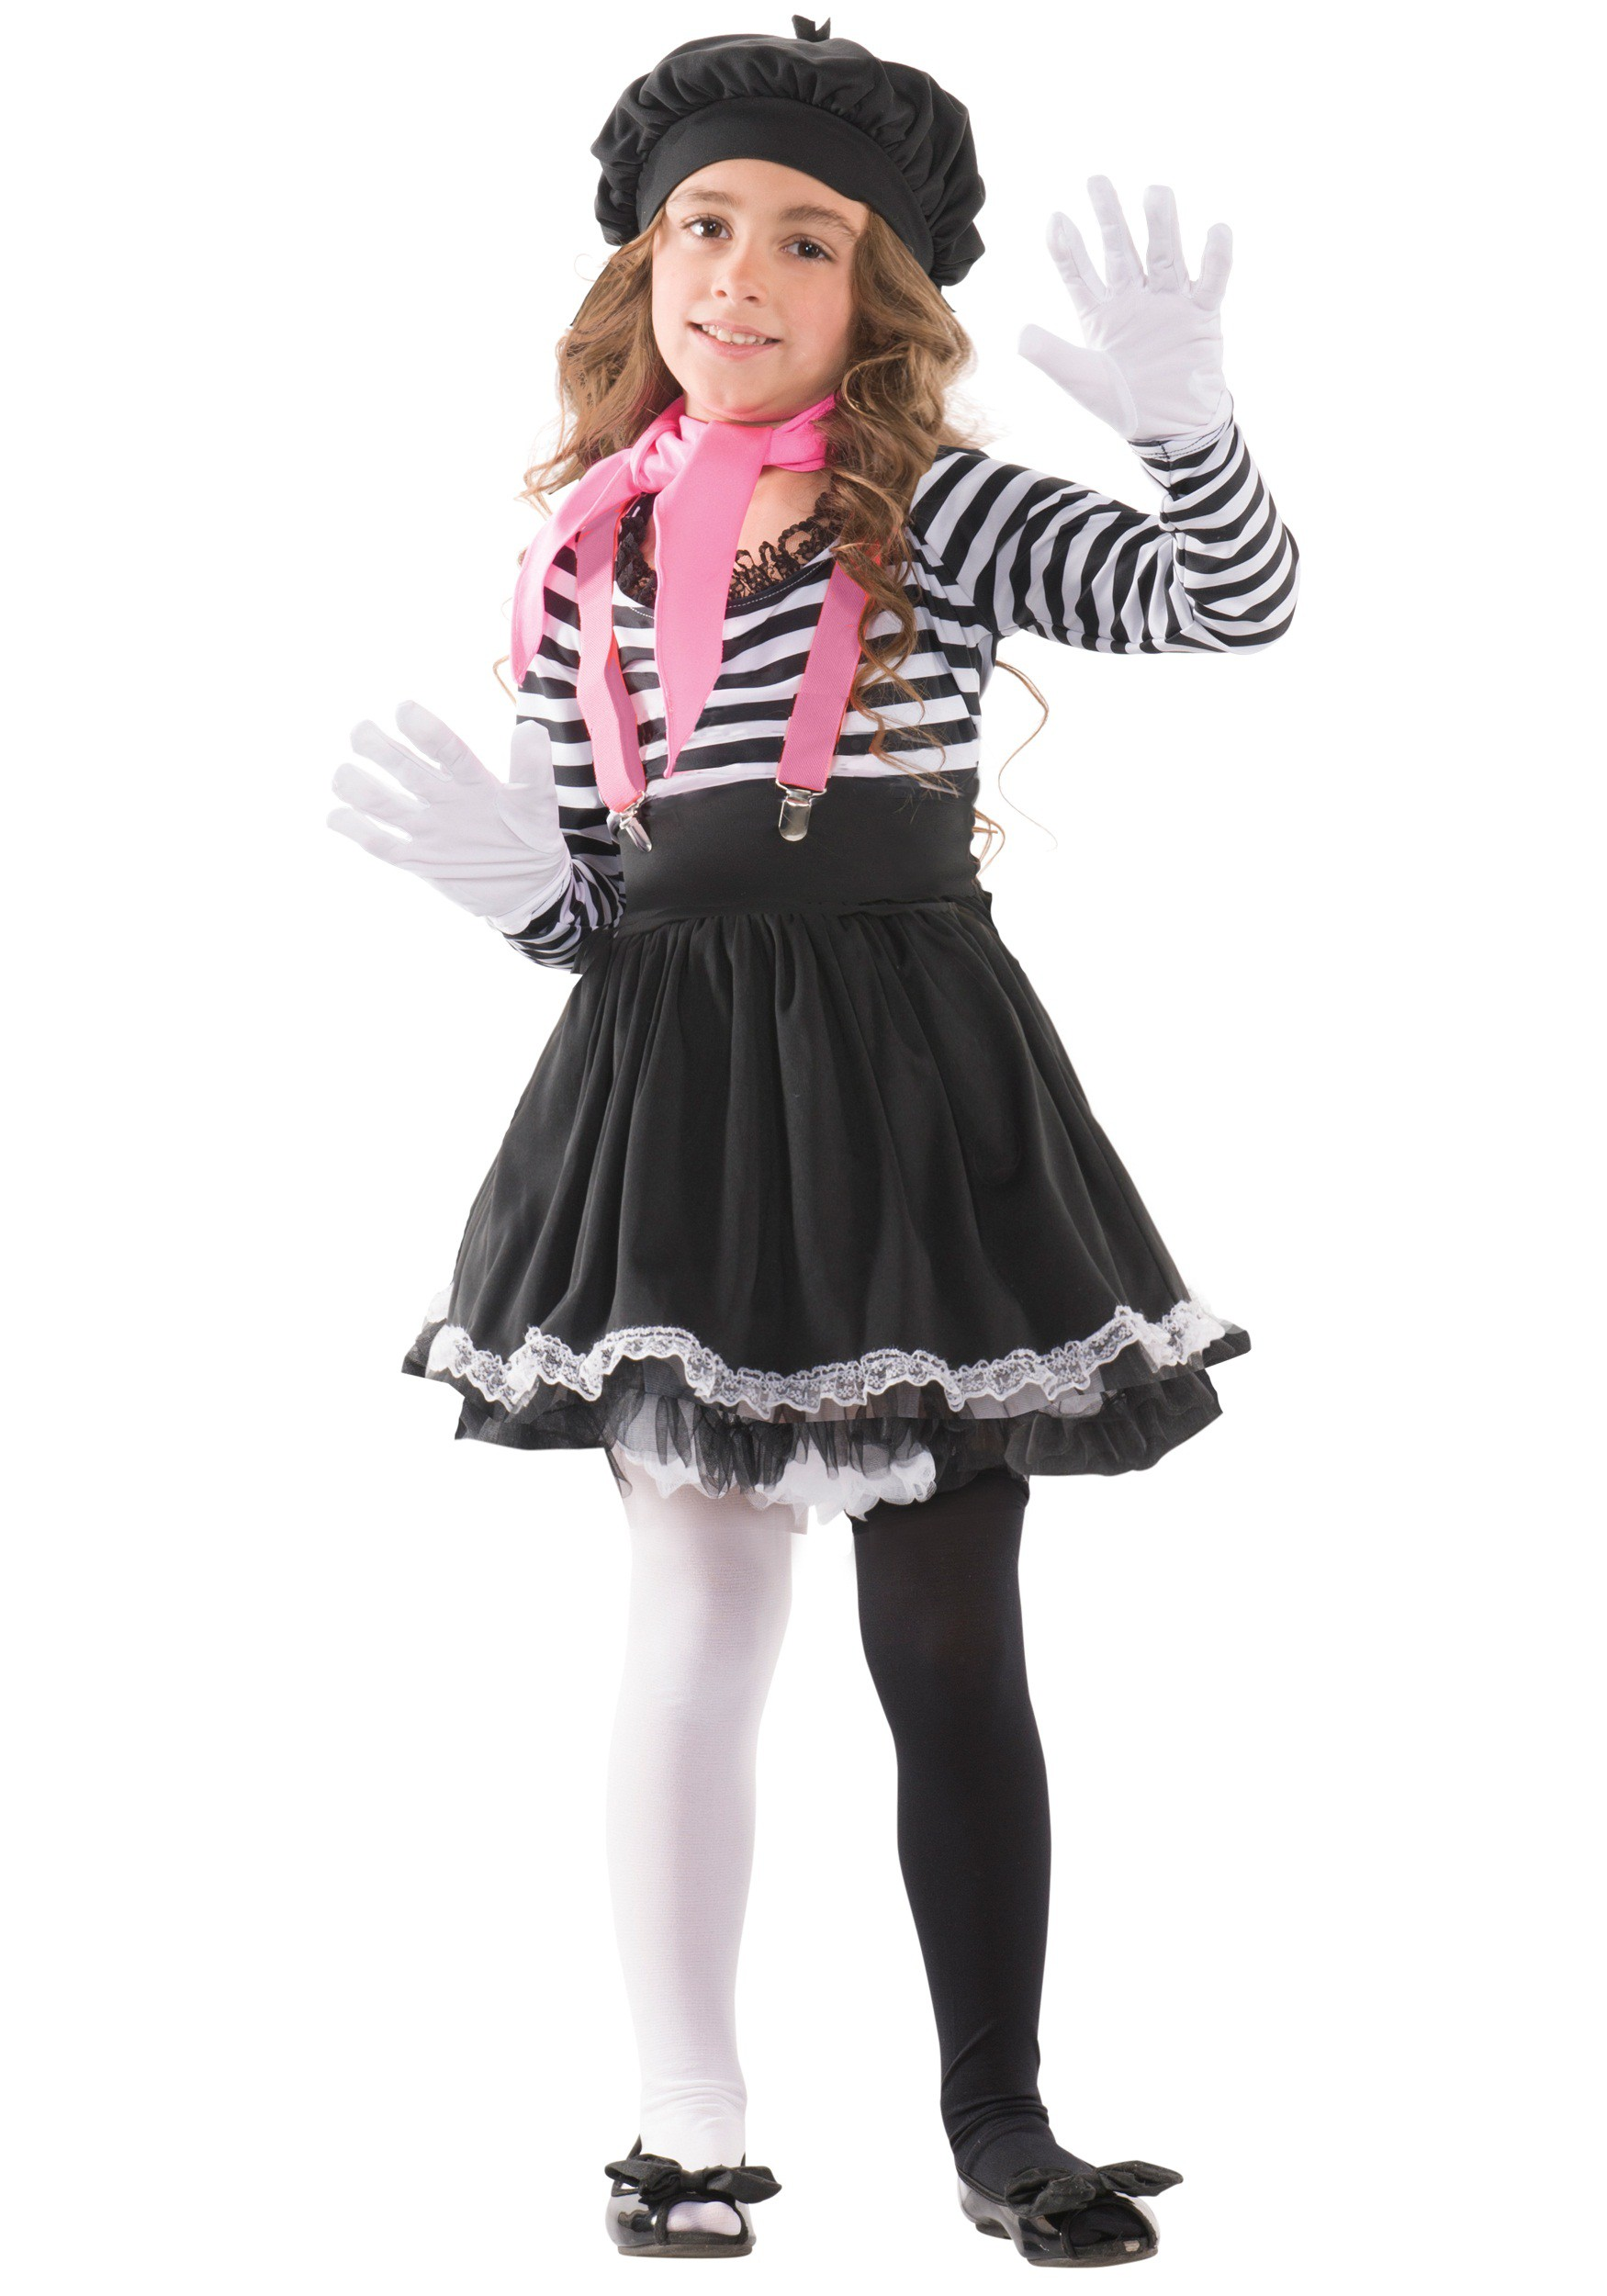 Child Mesmerizing Mime Costume  sc 1 st  Halloween Costumes & Mime Halloween Costumes u0026 Outfits - HalloweenCostumes.com